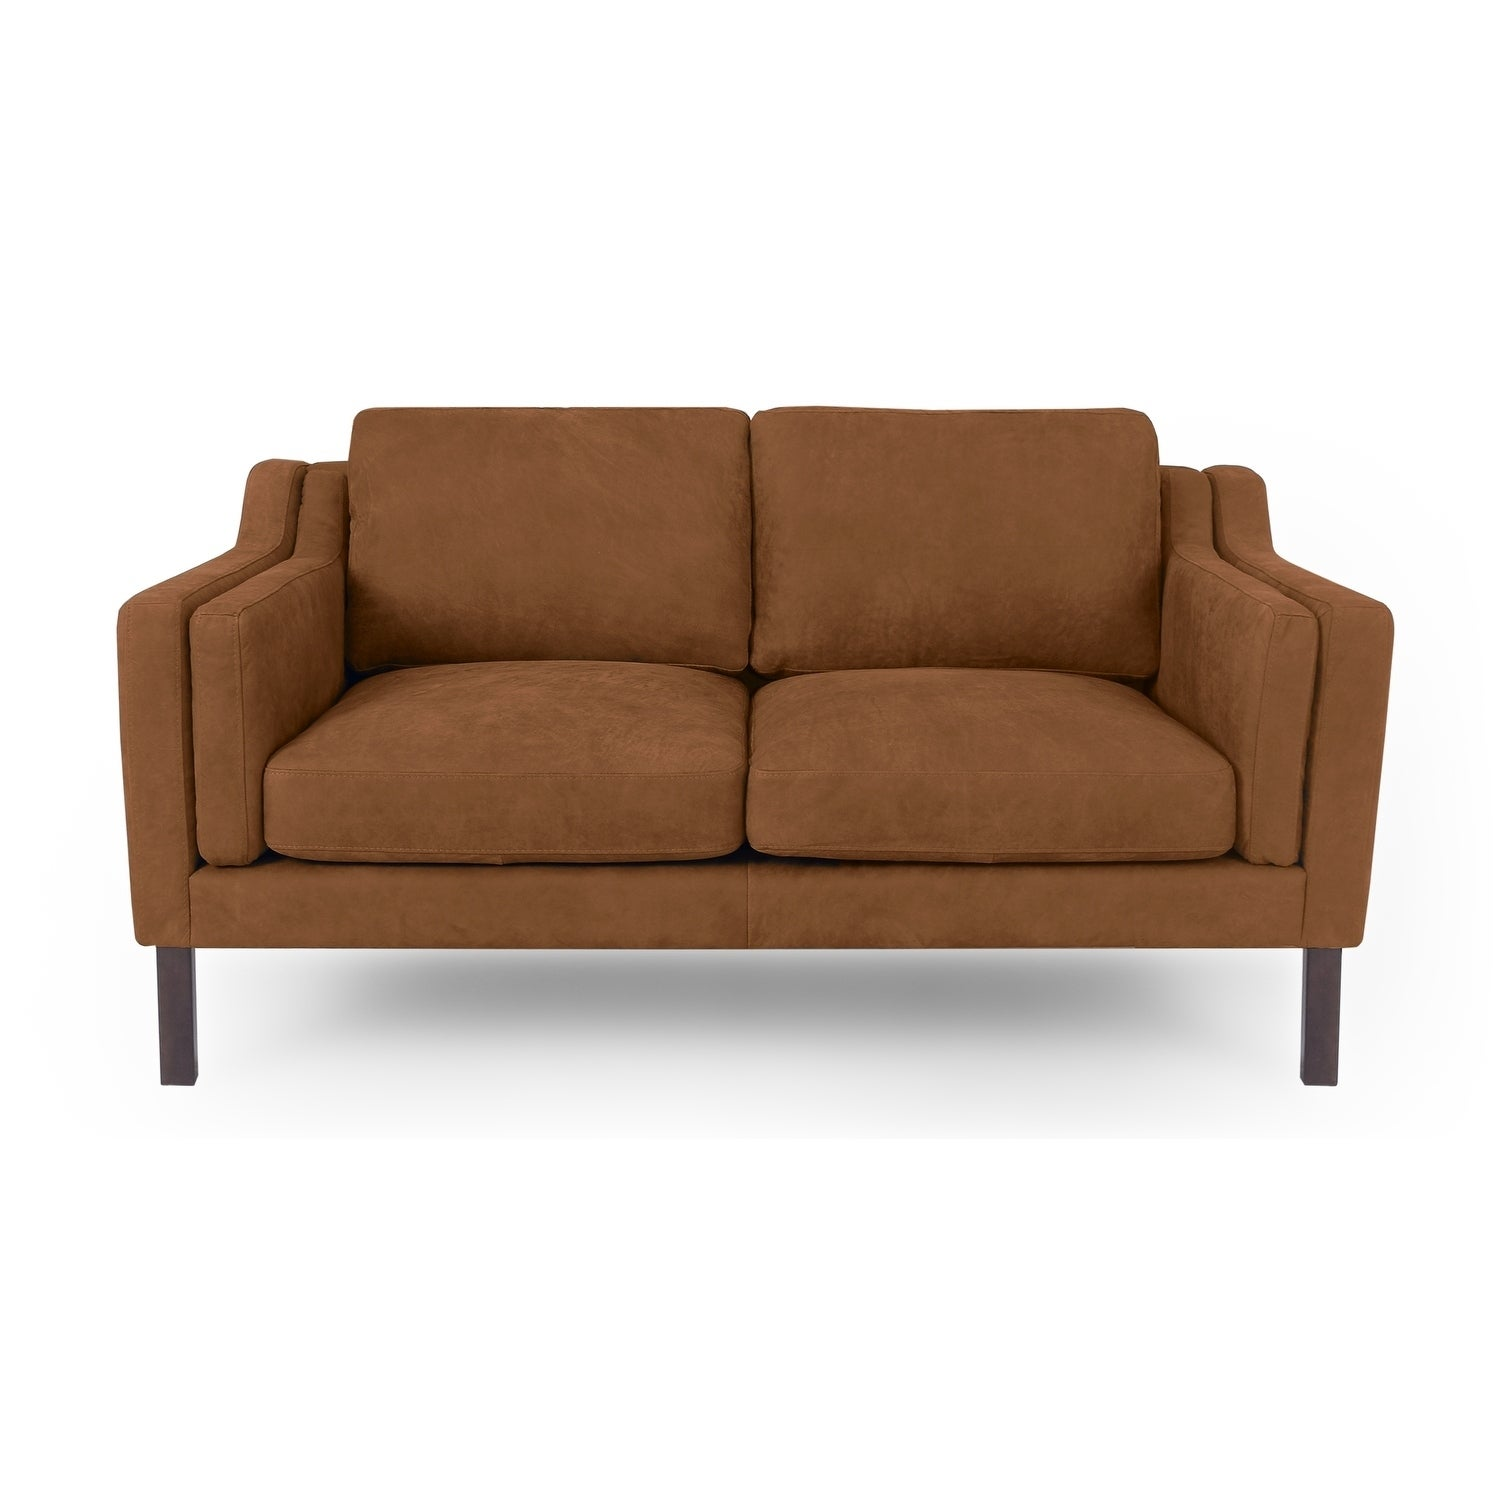 Night Full Grain Aniline Leather Sofas Couches Furniture